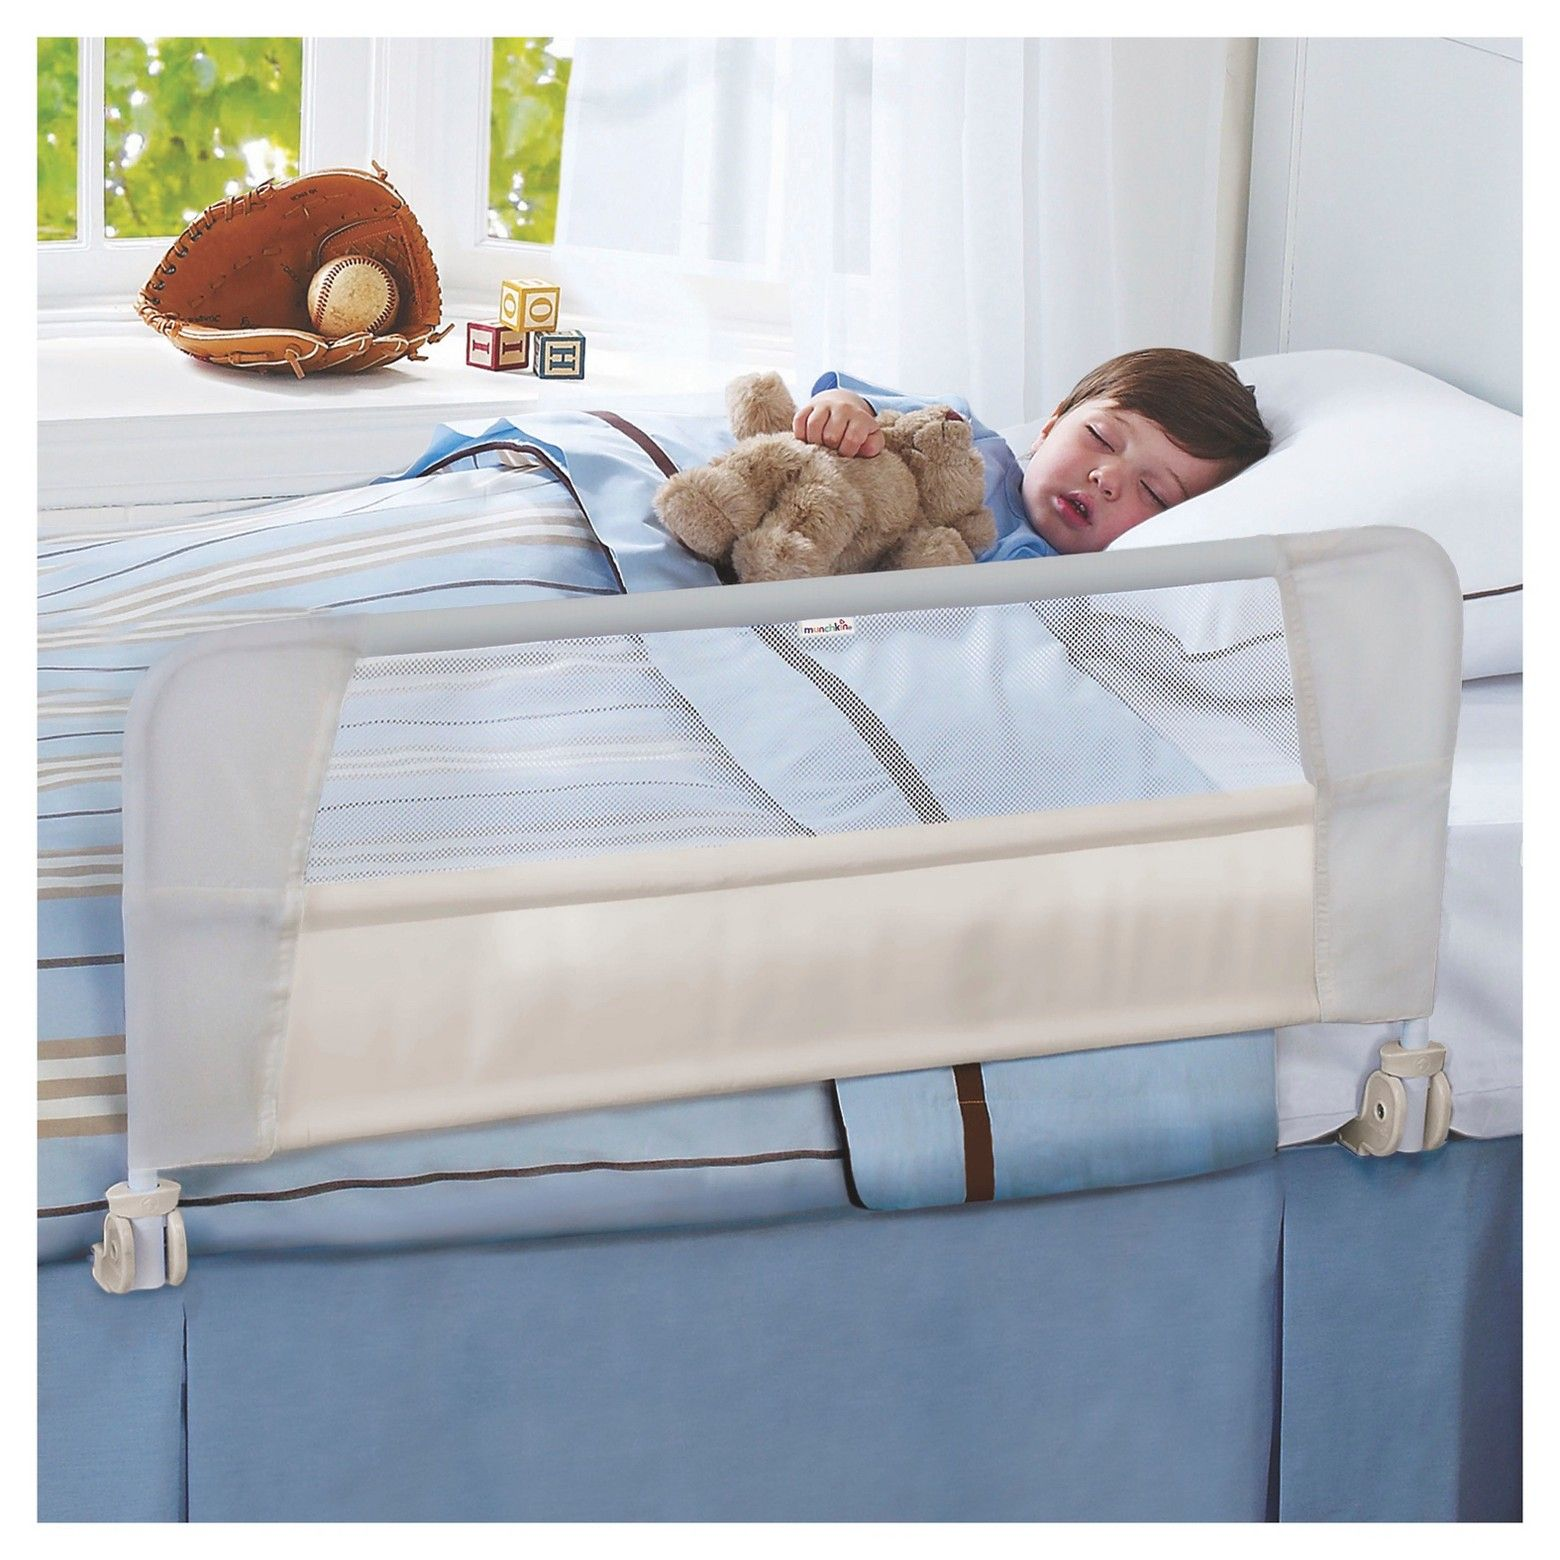 for myles at 2nd birthday the munchkin safety toddler bed rail